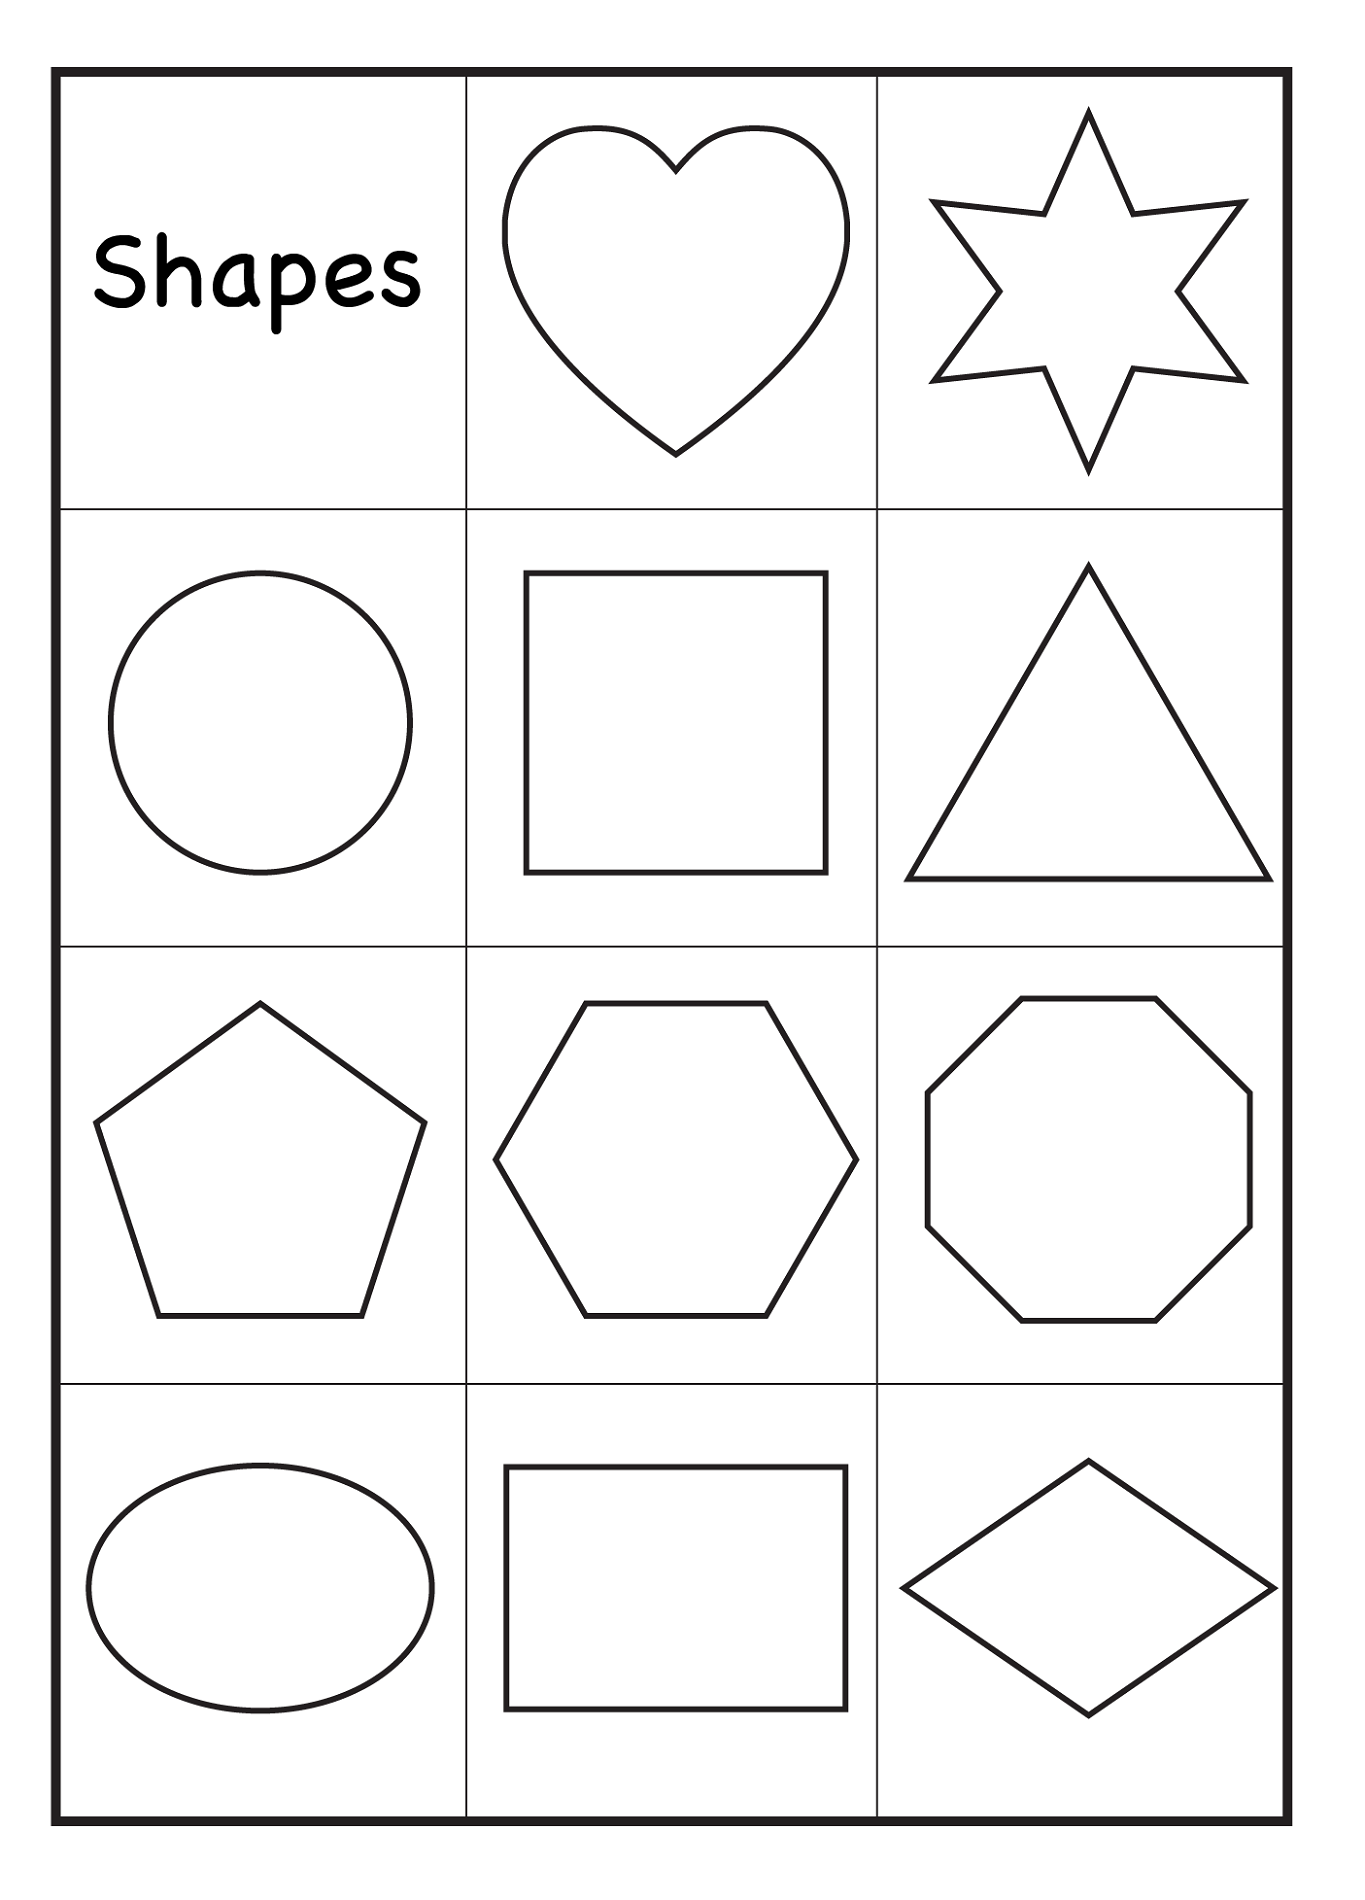 Uncategorized Shape Worksheets color by shapes worksheets activity shelter shape worksheet basics